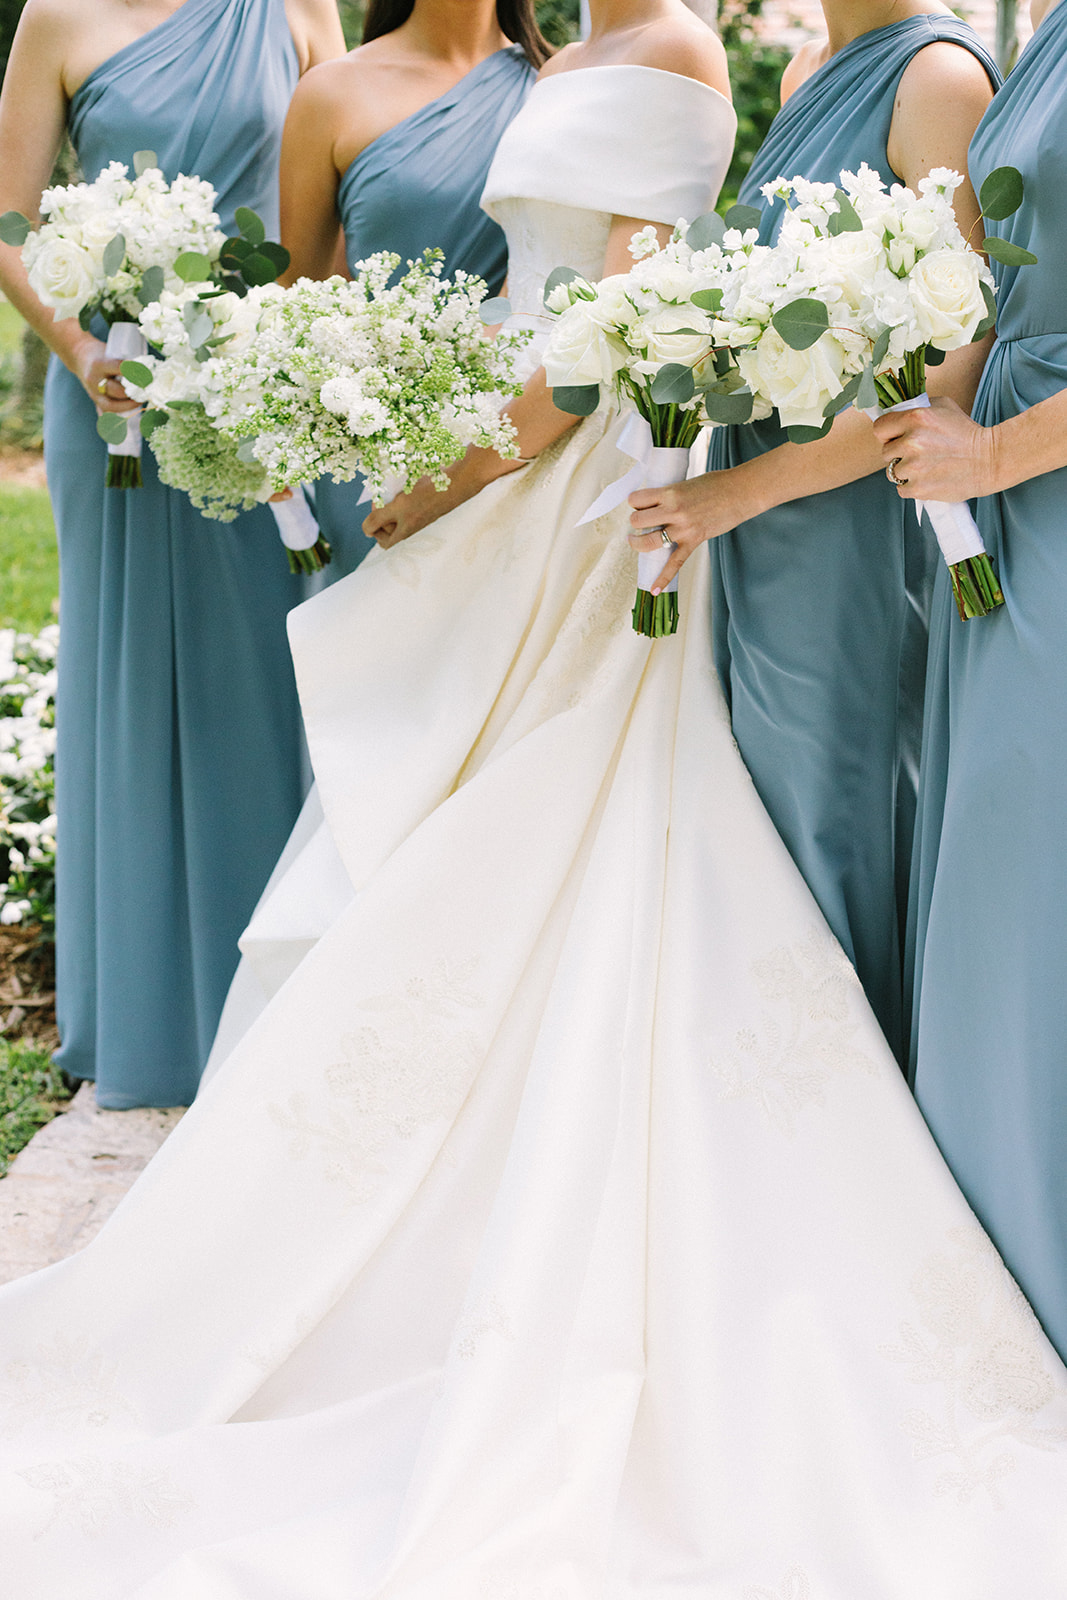 bride with bridesmaids holding white floral wedding bouquets